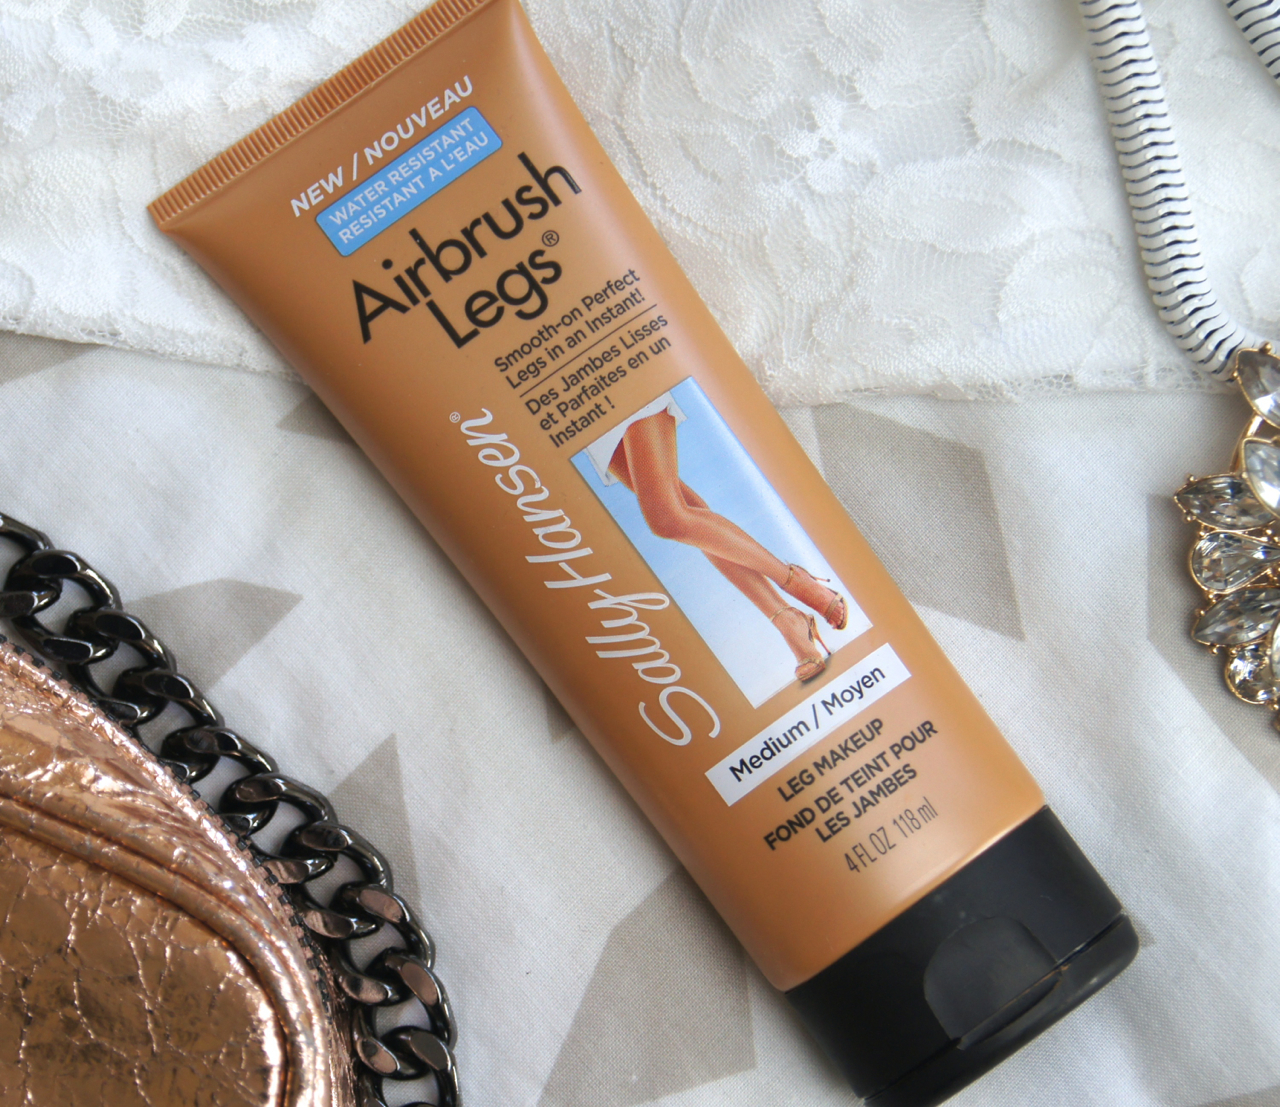 sally hansen airbrush legs leg makeup review